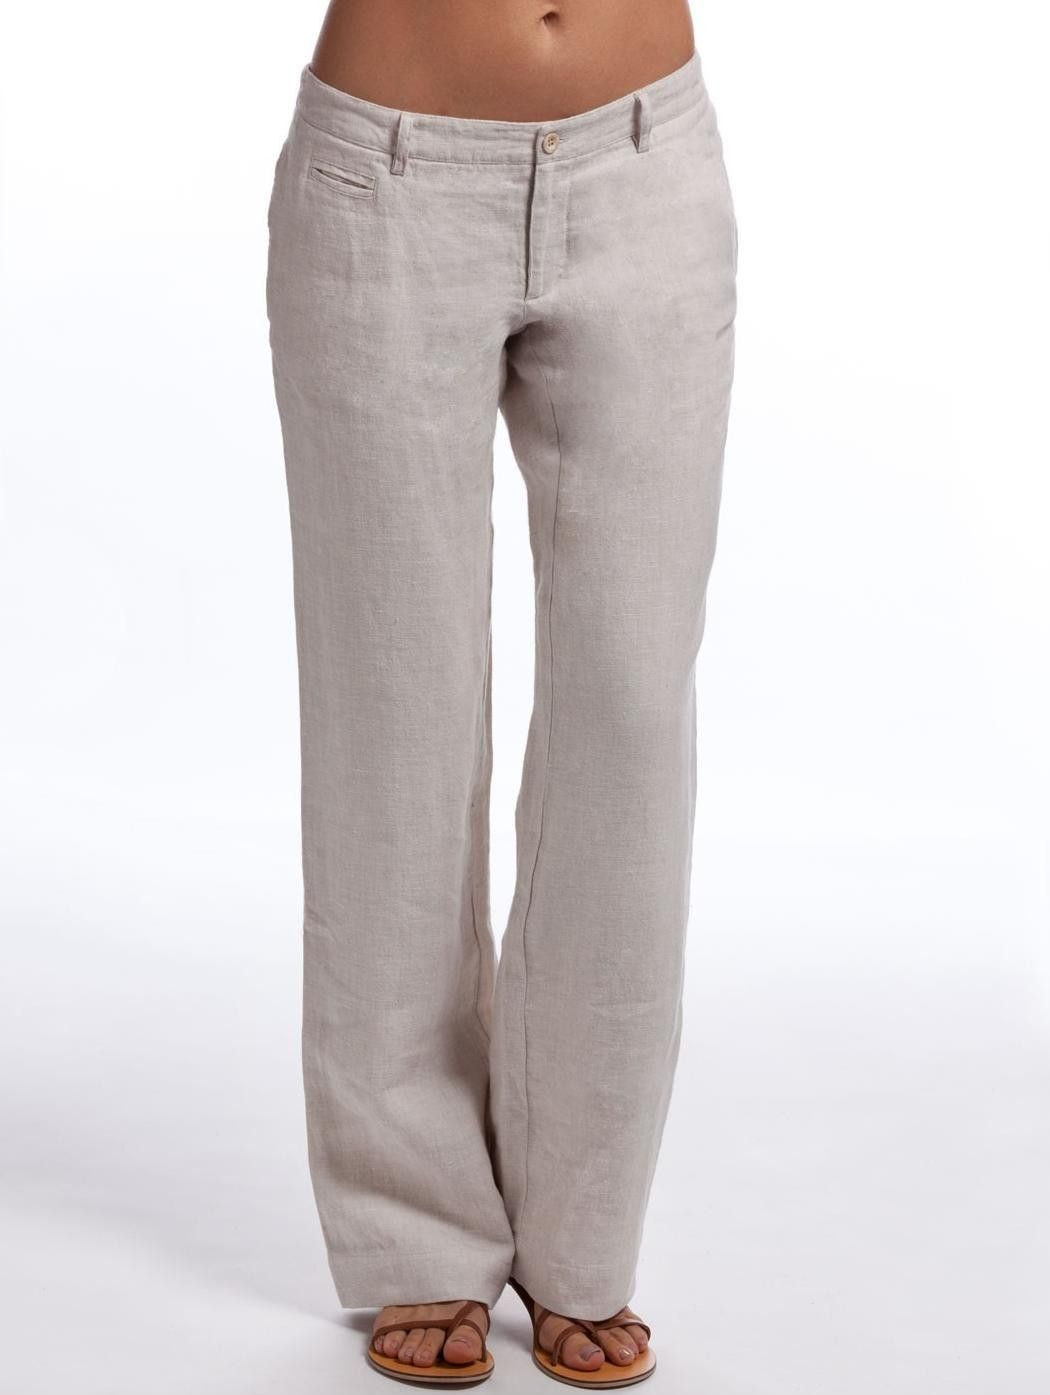 Feel comfortable and look great wearing linen pants. For men and women, we have a selection of linen bottoms for many occasions, aside from a leisurely stroll along the beach. Yes, we have the classic style many think of when they think of this warm weather essential.